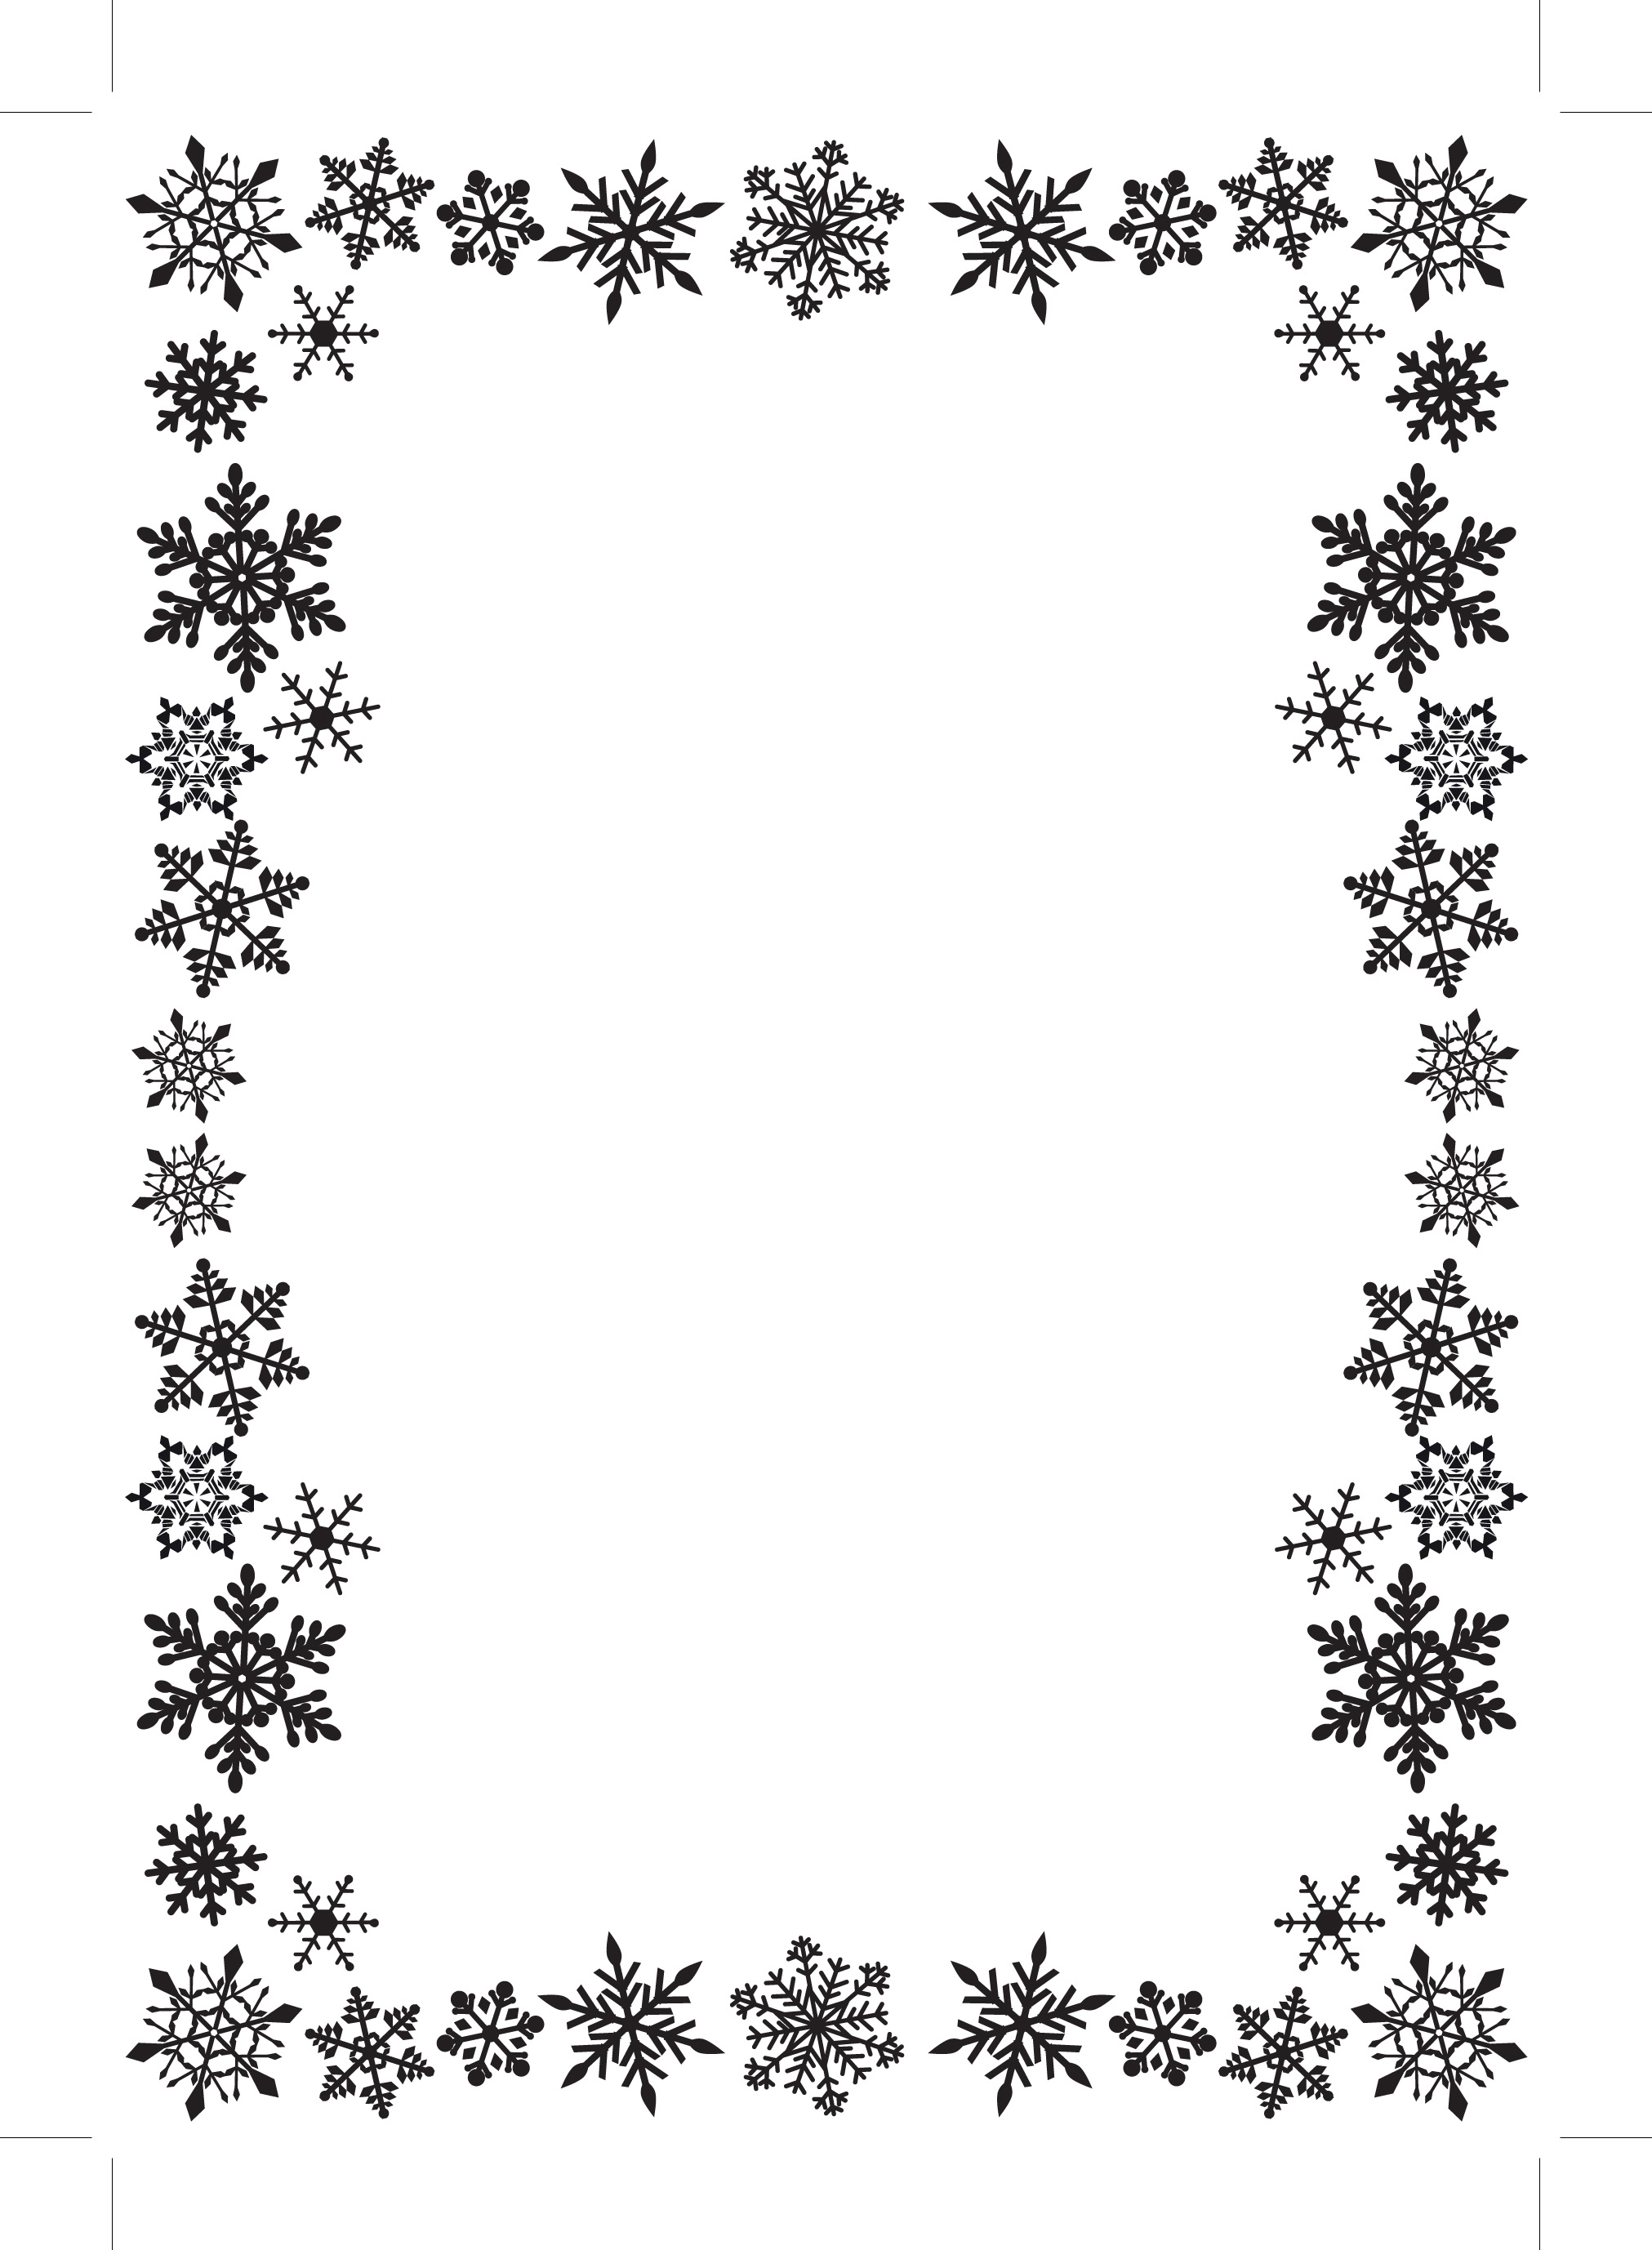 Foiled Card Blanks And Envelo - Free Snowflake Border Clipart